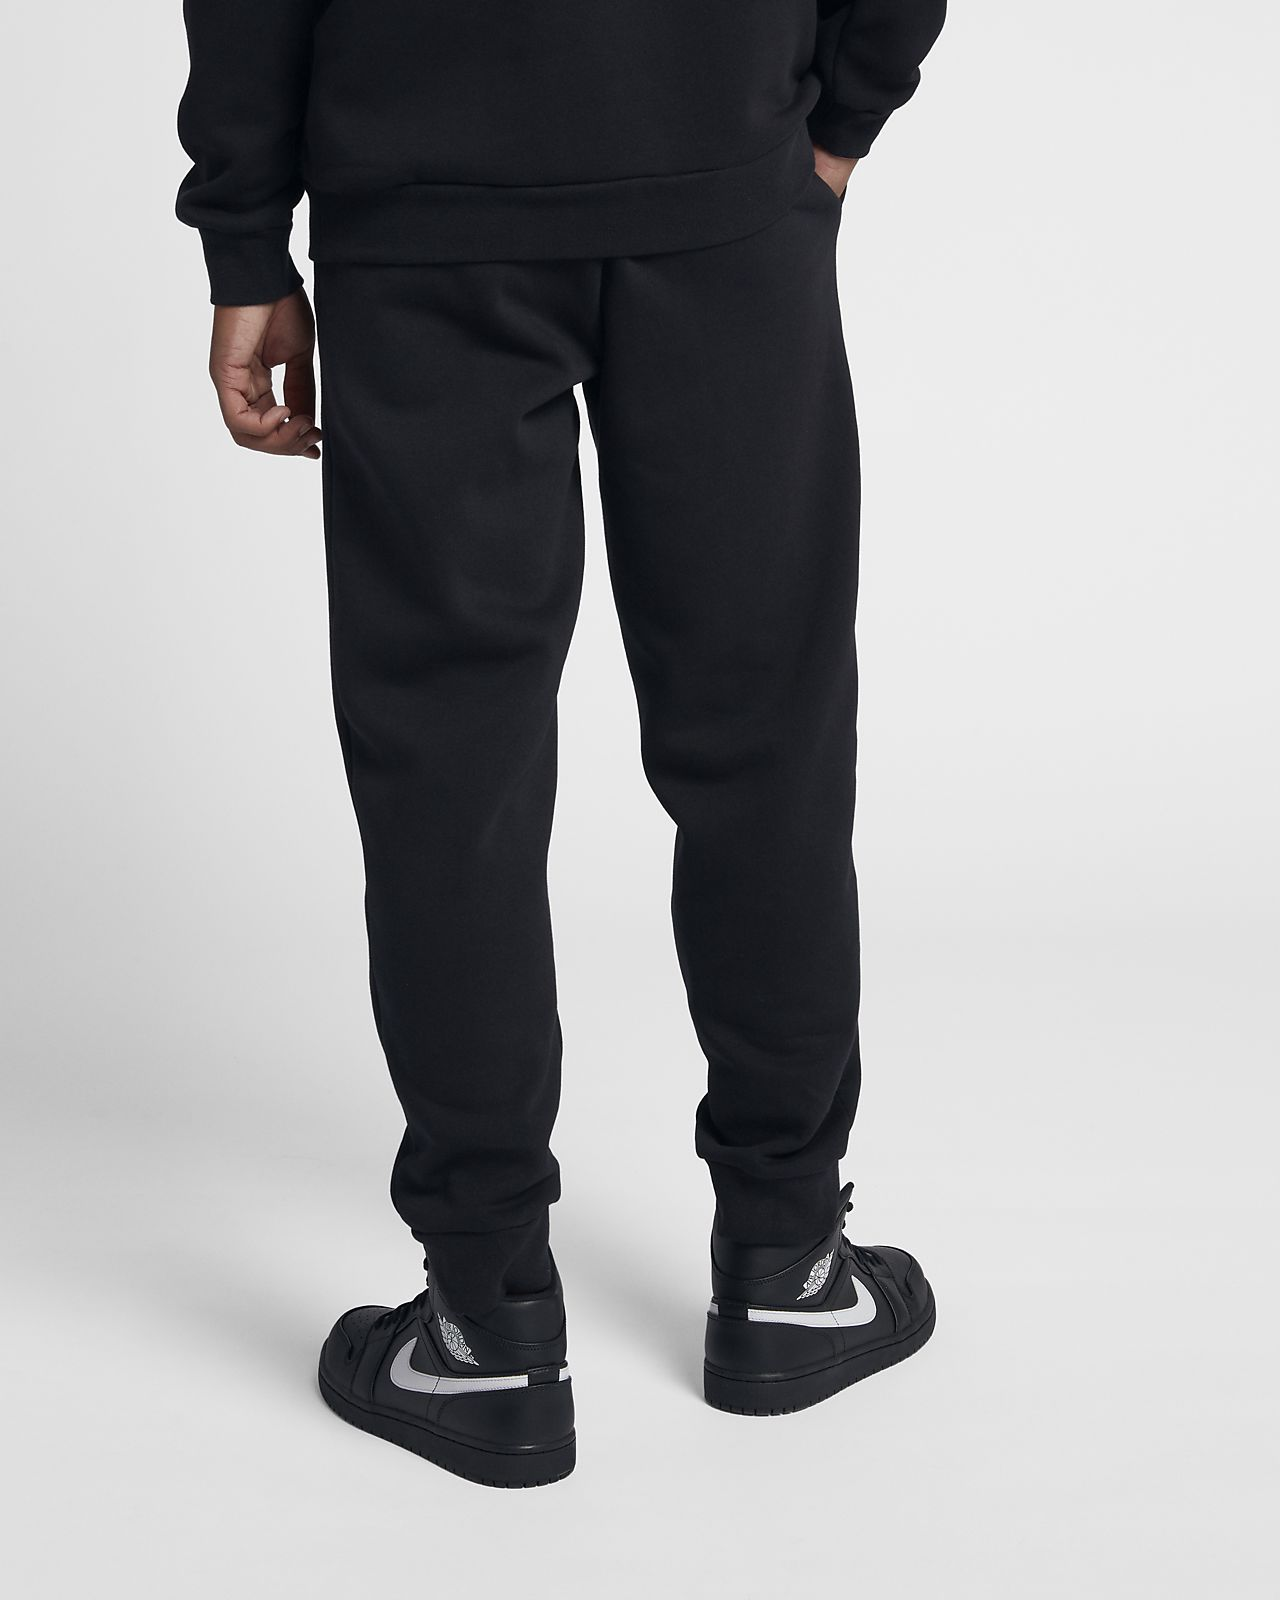 JORDAN JUMPMAN FLEECE PANT BLACK WHITE 940172 010 MENS US SIZES